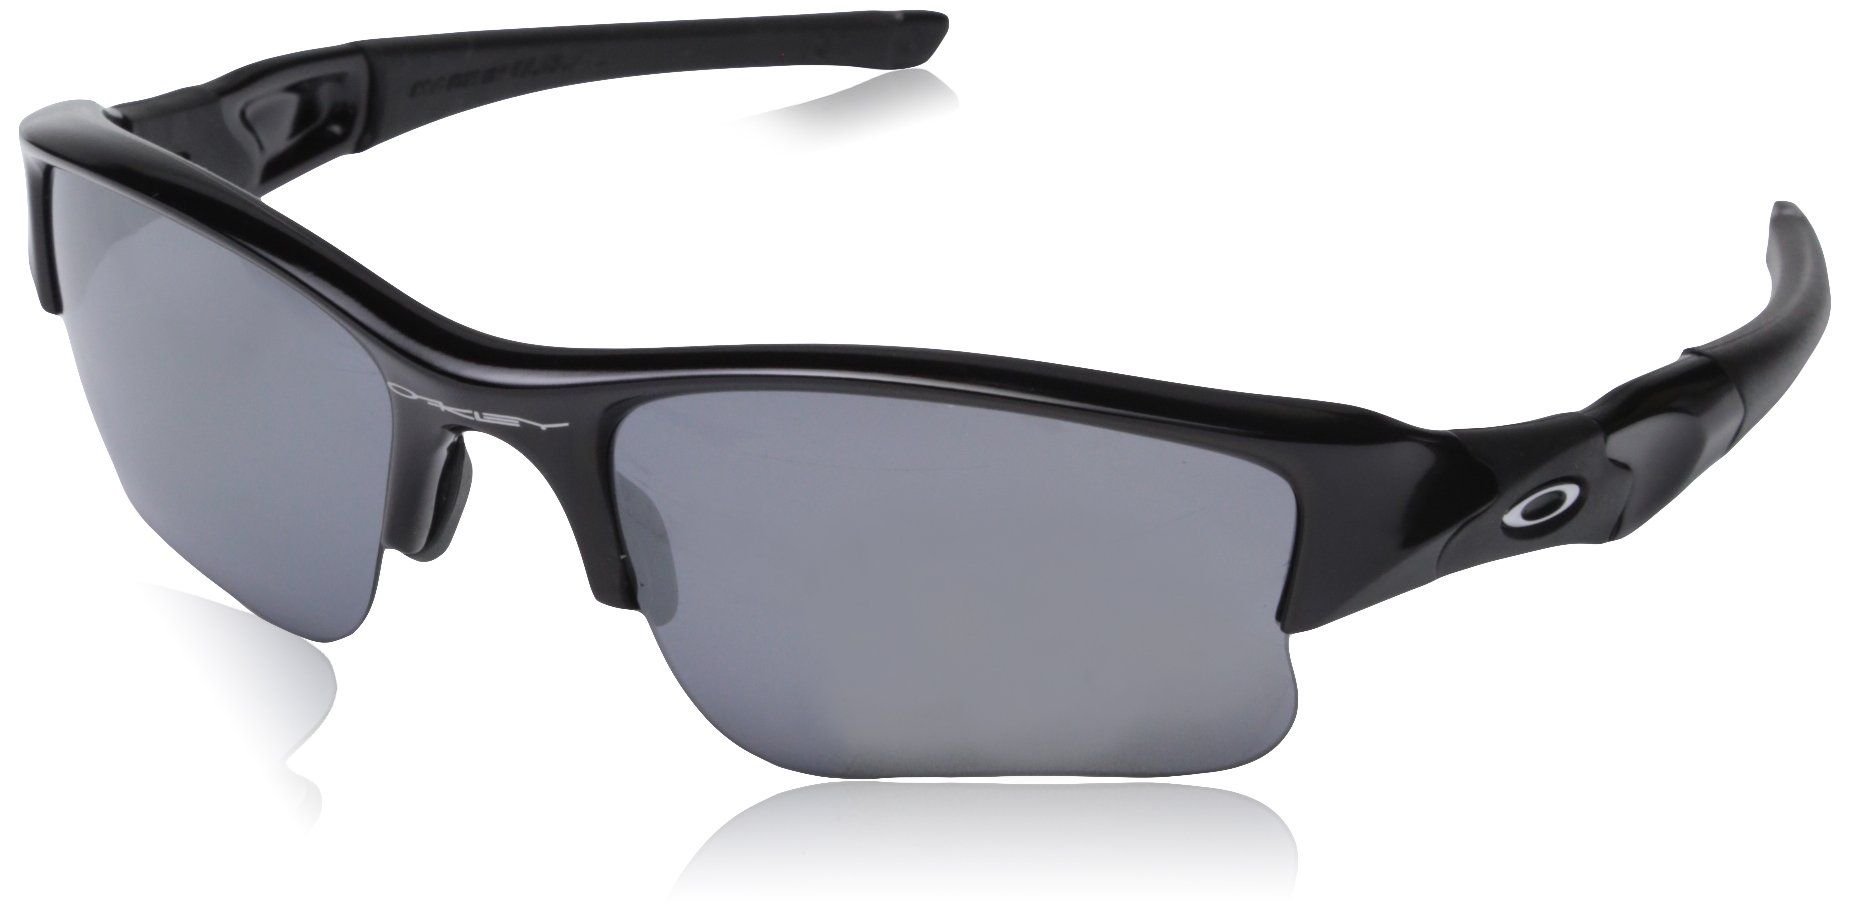 Oakley Flak Jacket XLJ Sunglasses Jet Black/Black Iridium, 63mm by Oakley